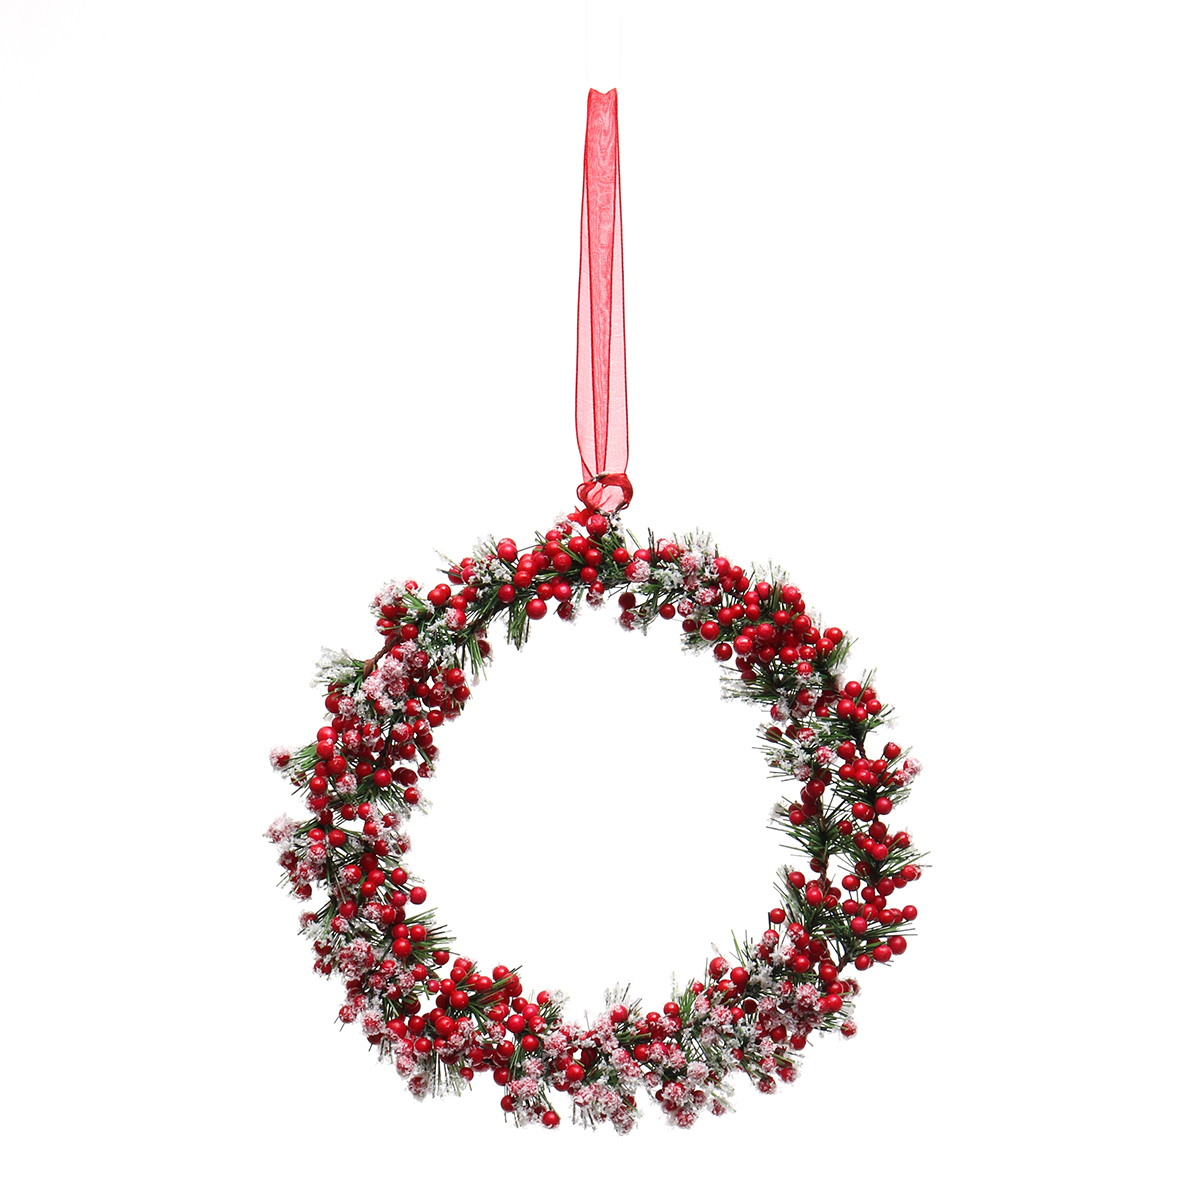 SNOWED RED BERRY WREATH ORNAMENT